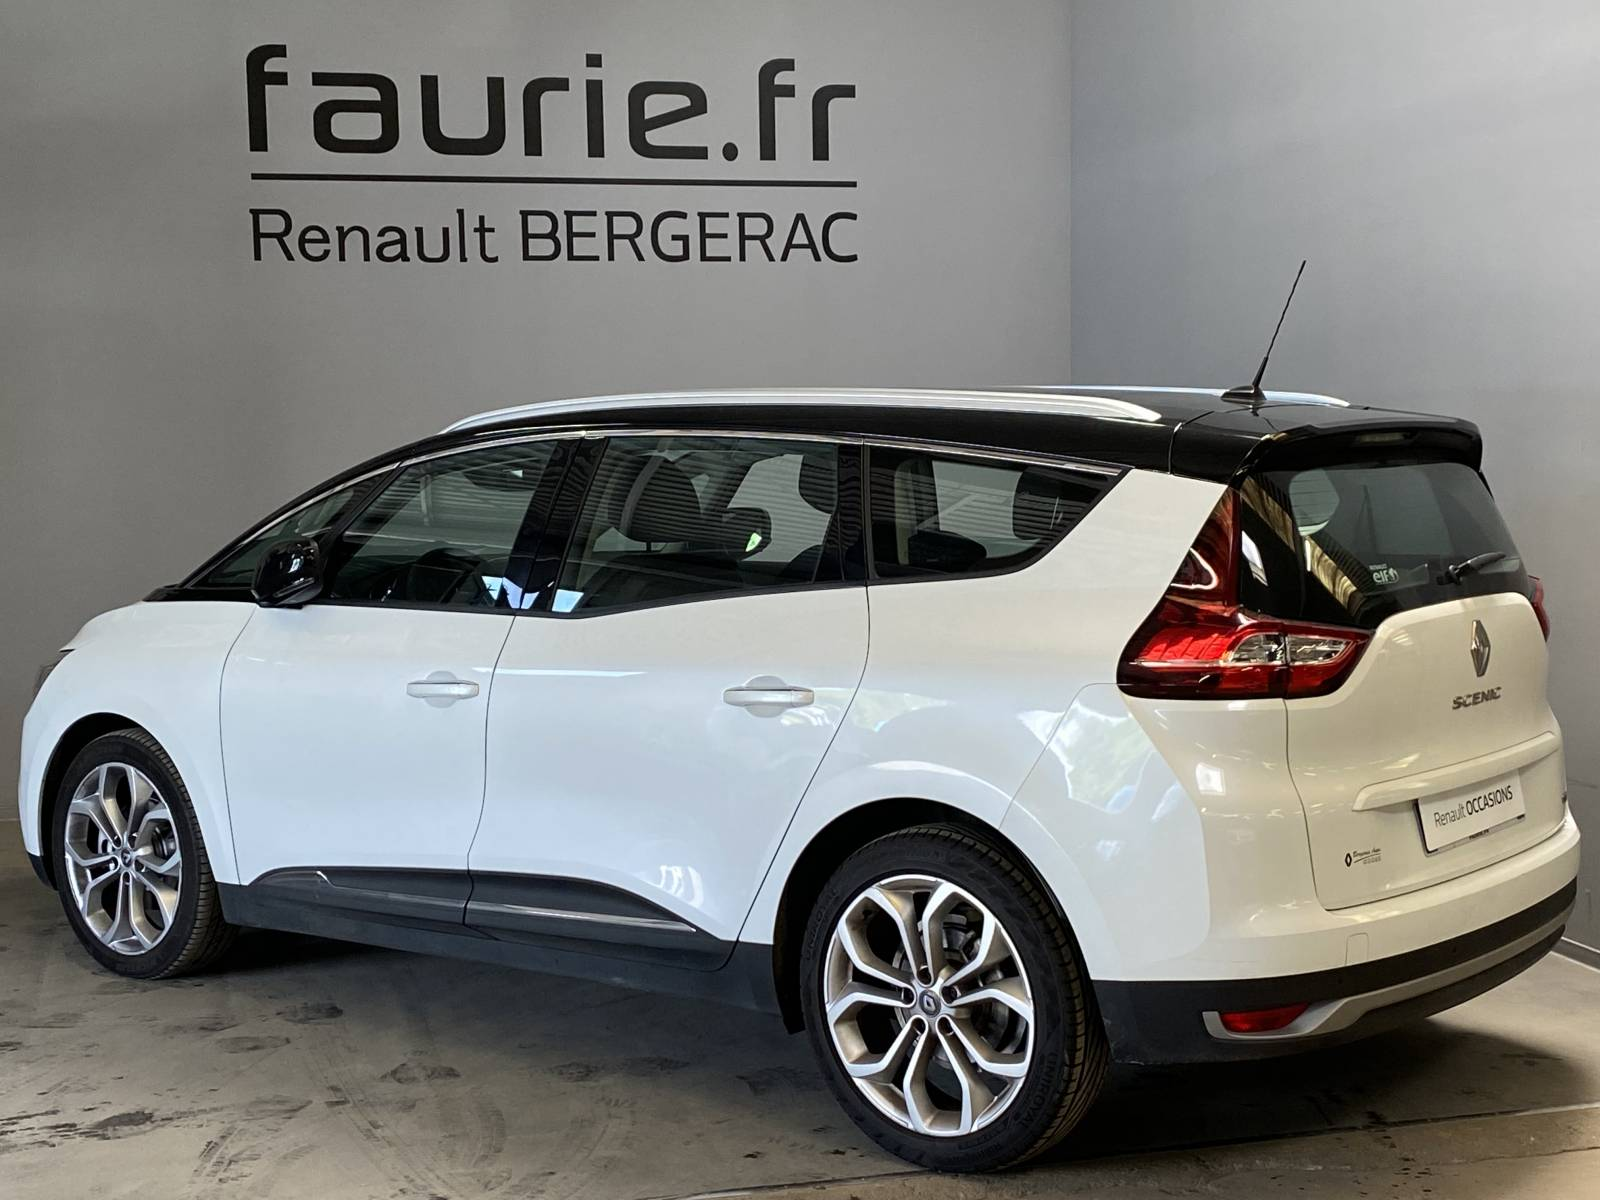 RENAULT Grand Scénic dCi 110 Energy EDC - véhicule d'occasion - Site Internet Faurie - Renault - Faurie Auto Bergerac - 24100 - Bergerac - 8